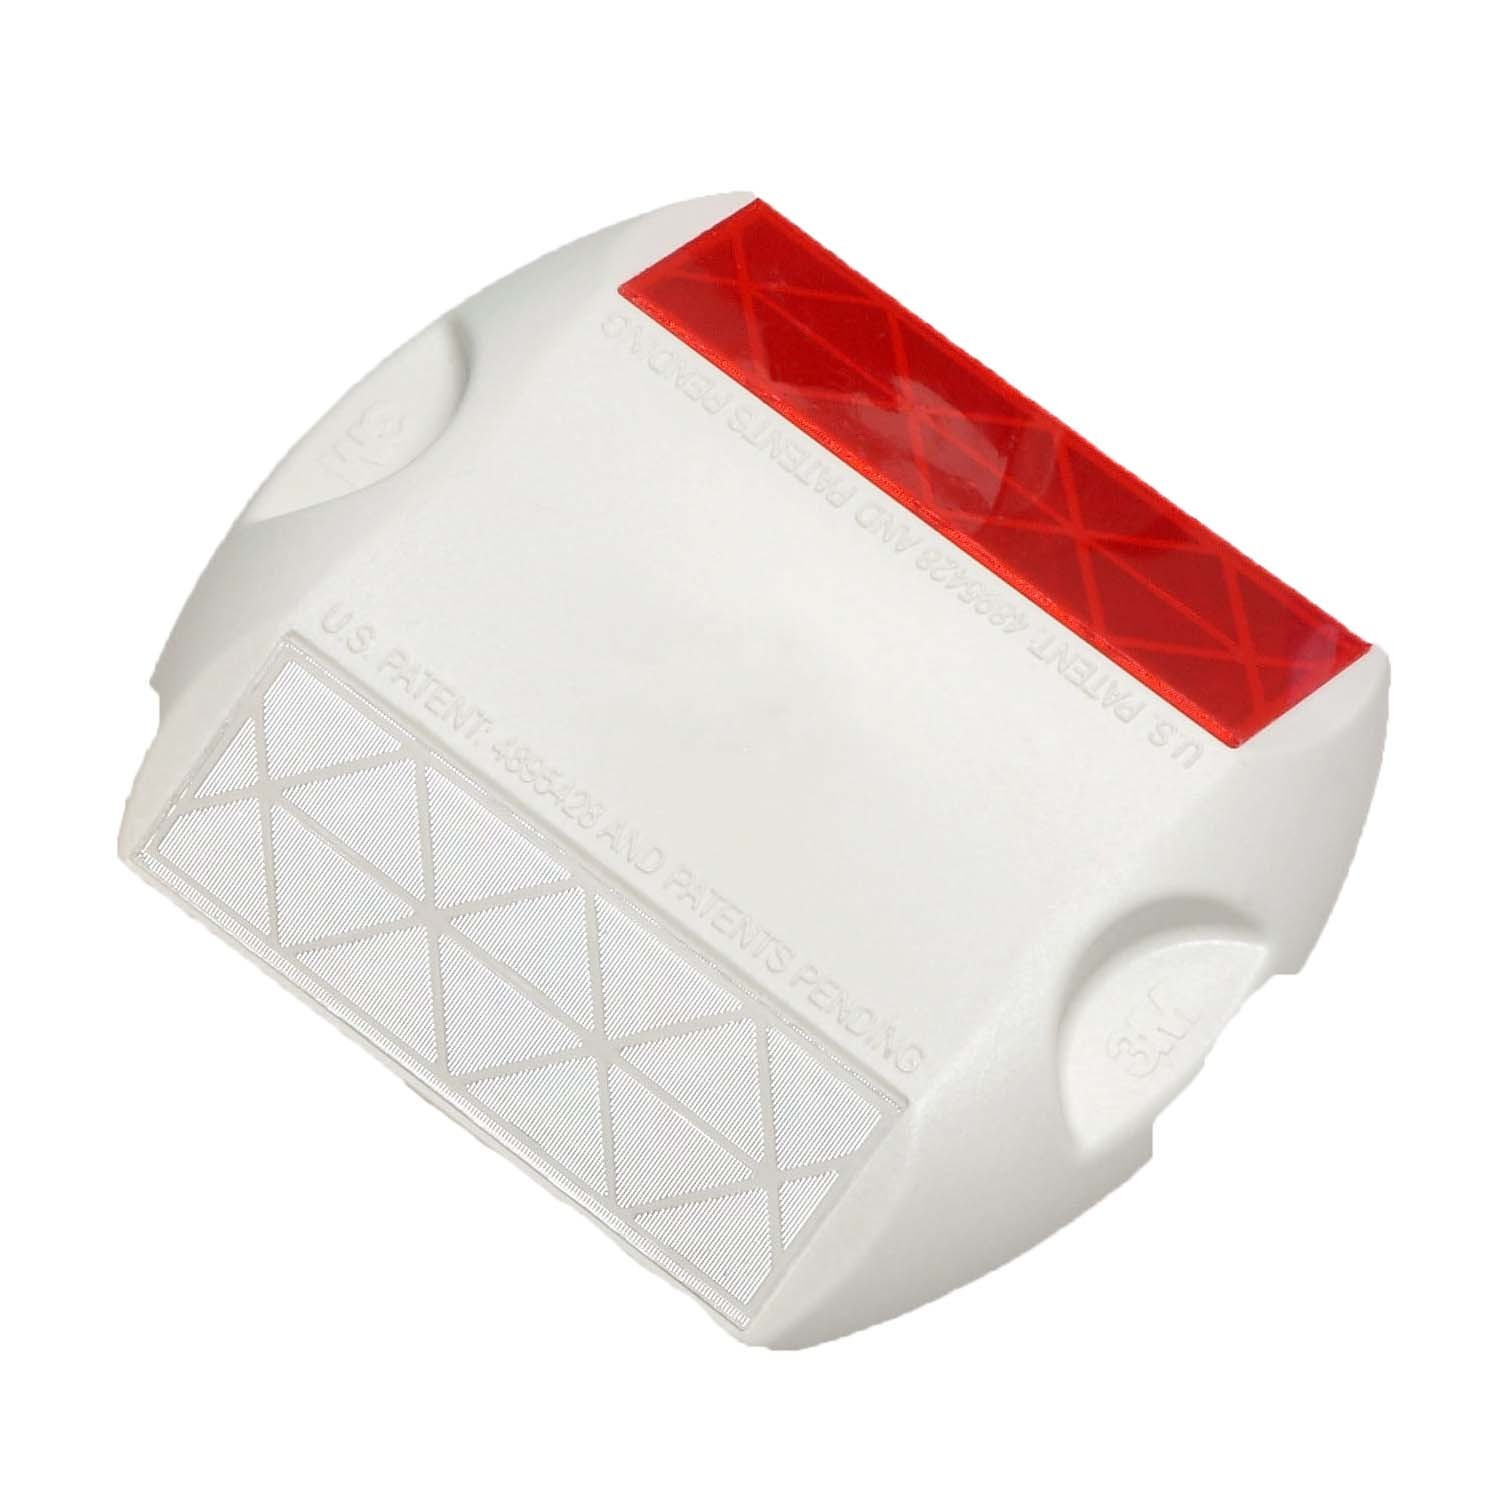 Two-Way White/ Red 3M Raised Pavement Marker Series 290 RPM-290-WR